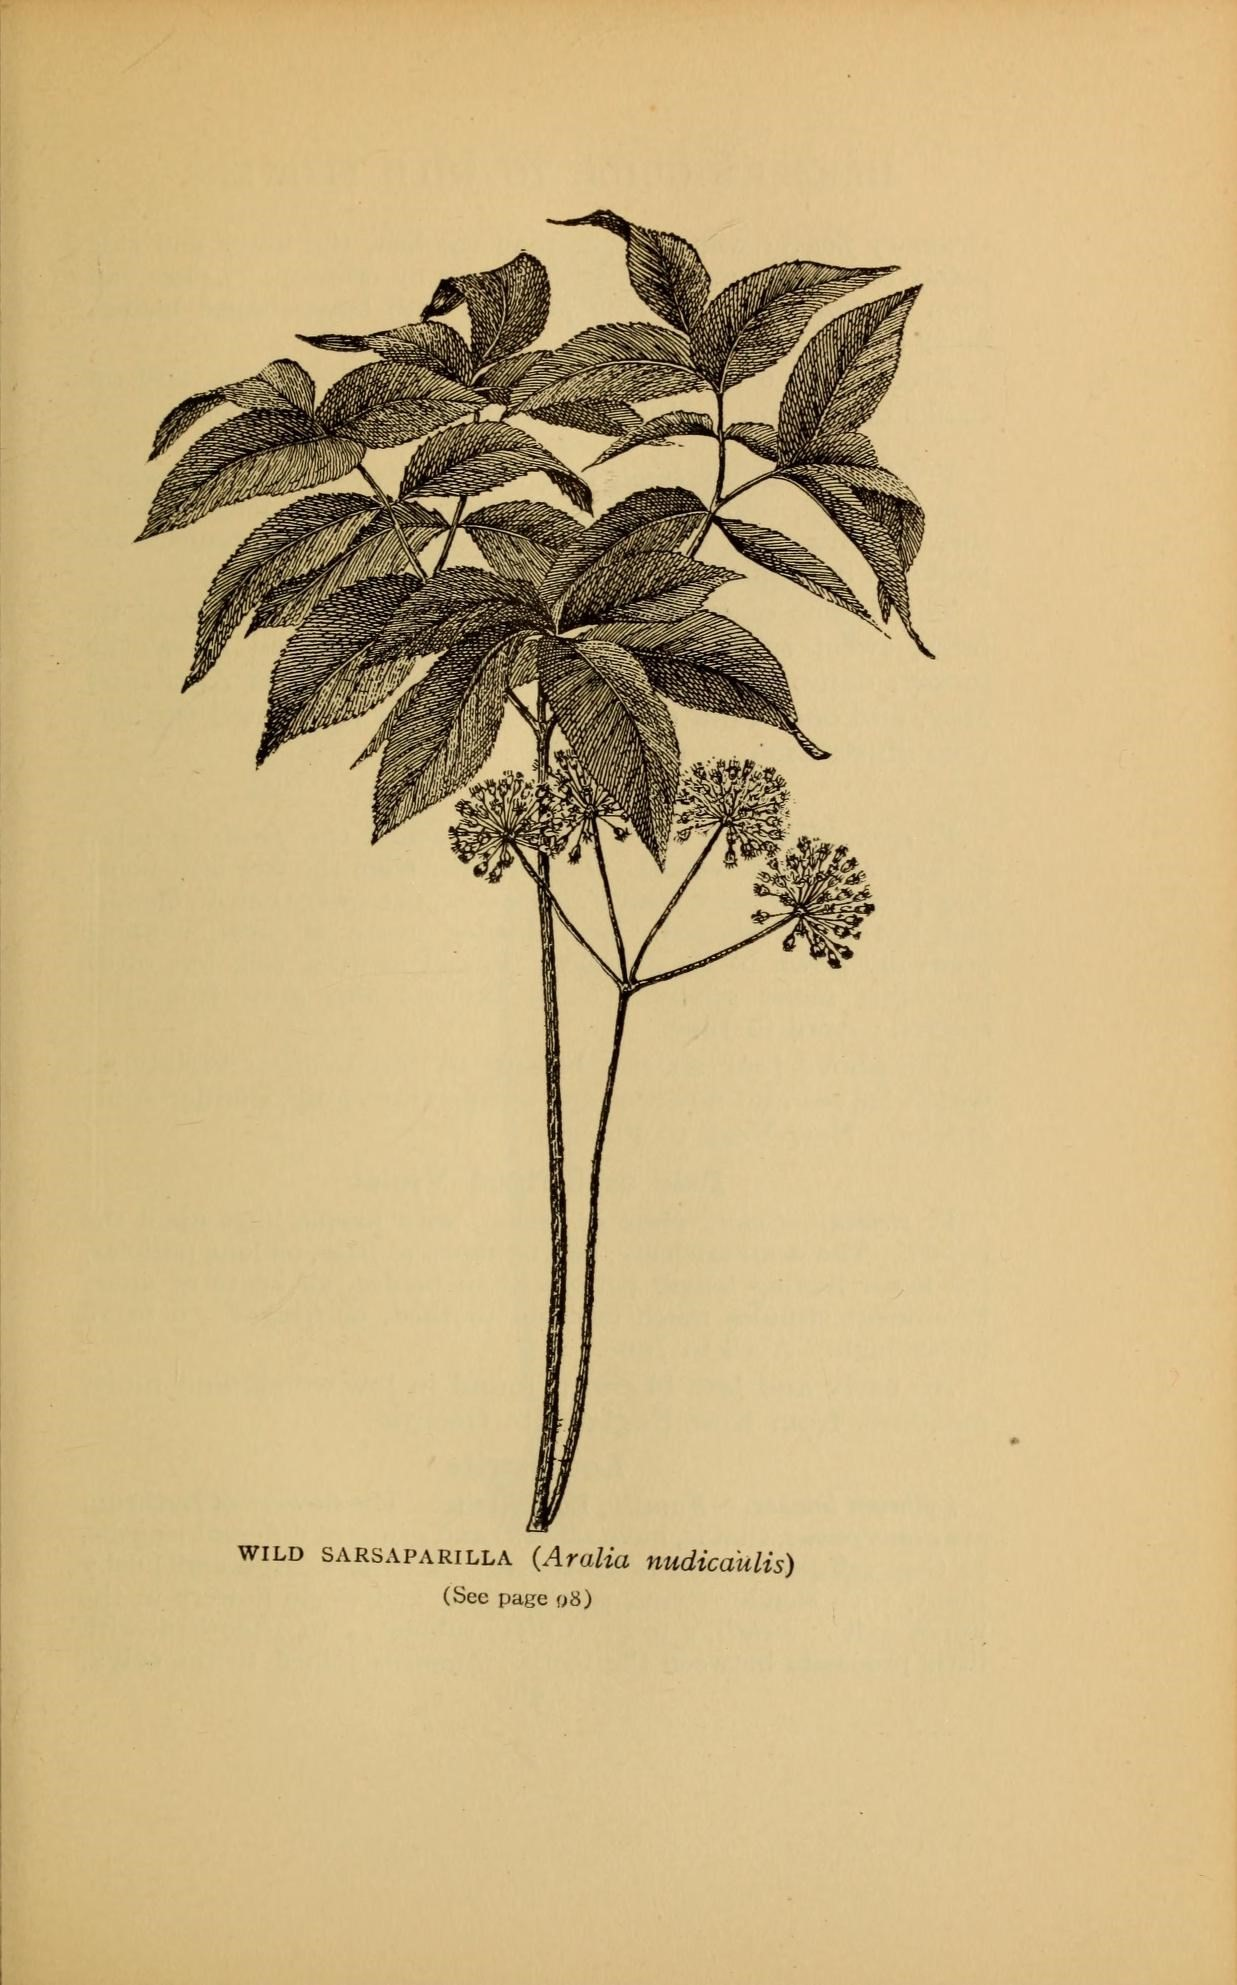 An Old Illustration of Wild Sarsaparilla - Aralia Nudicaulis